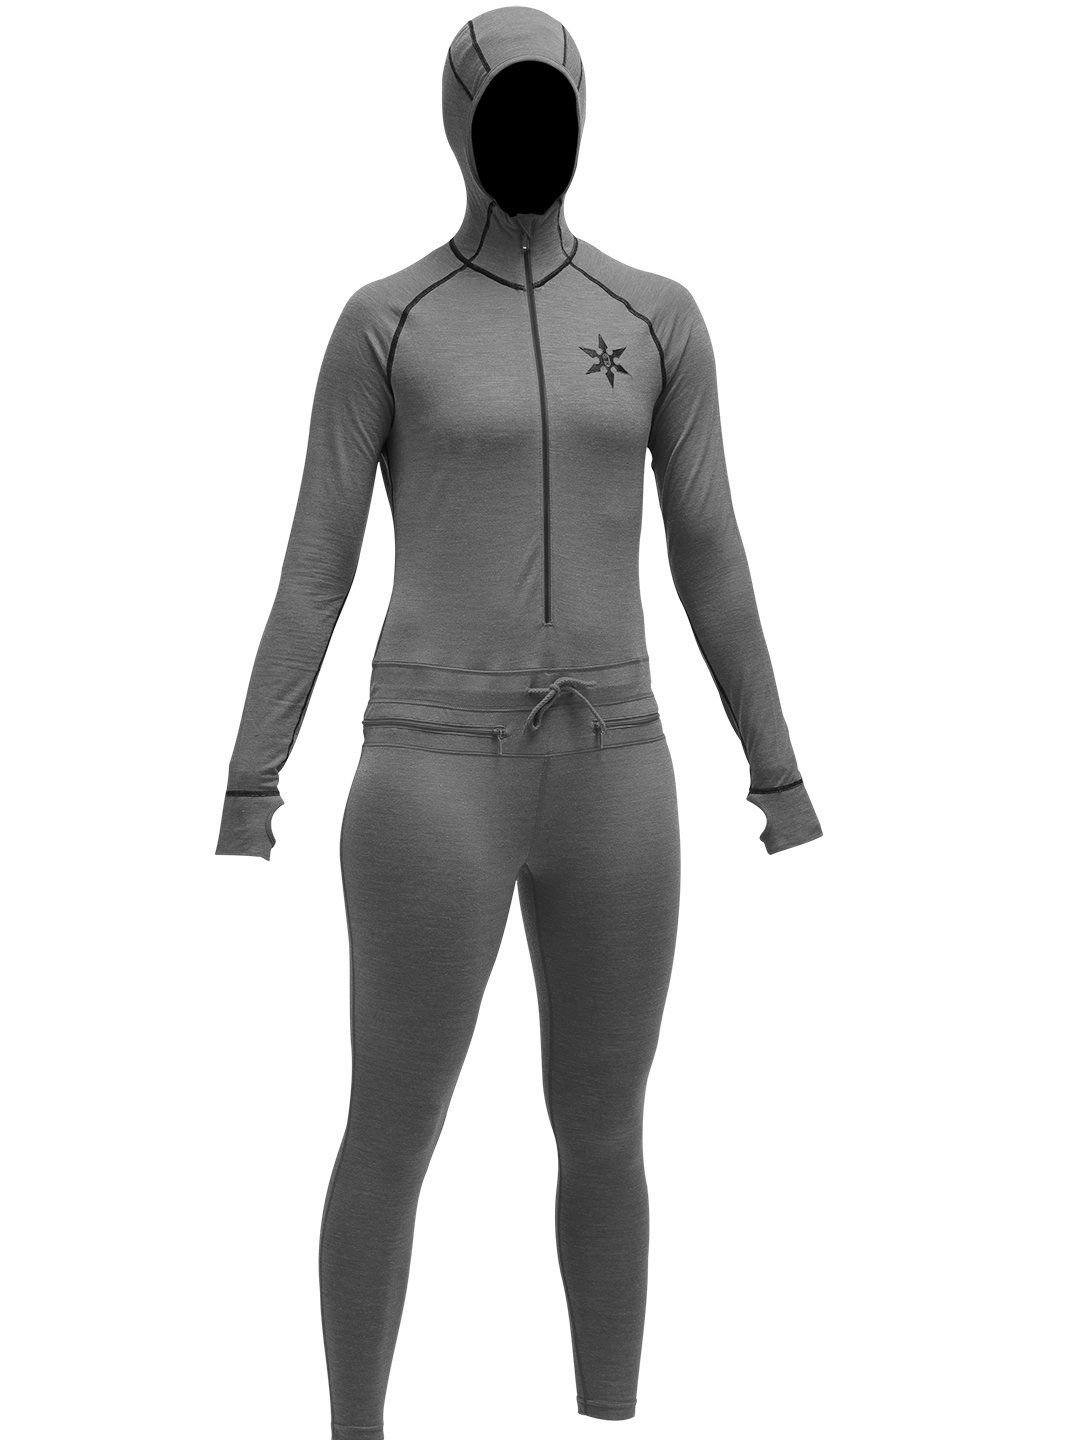 Airblaster Merino Ninja Suit - Women's Natural Black, M by AIRBLASTER